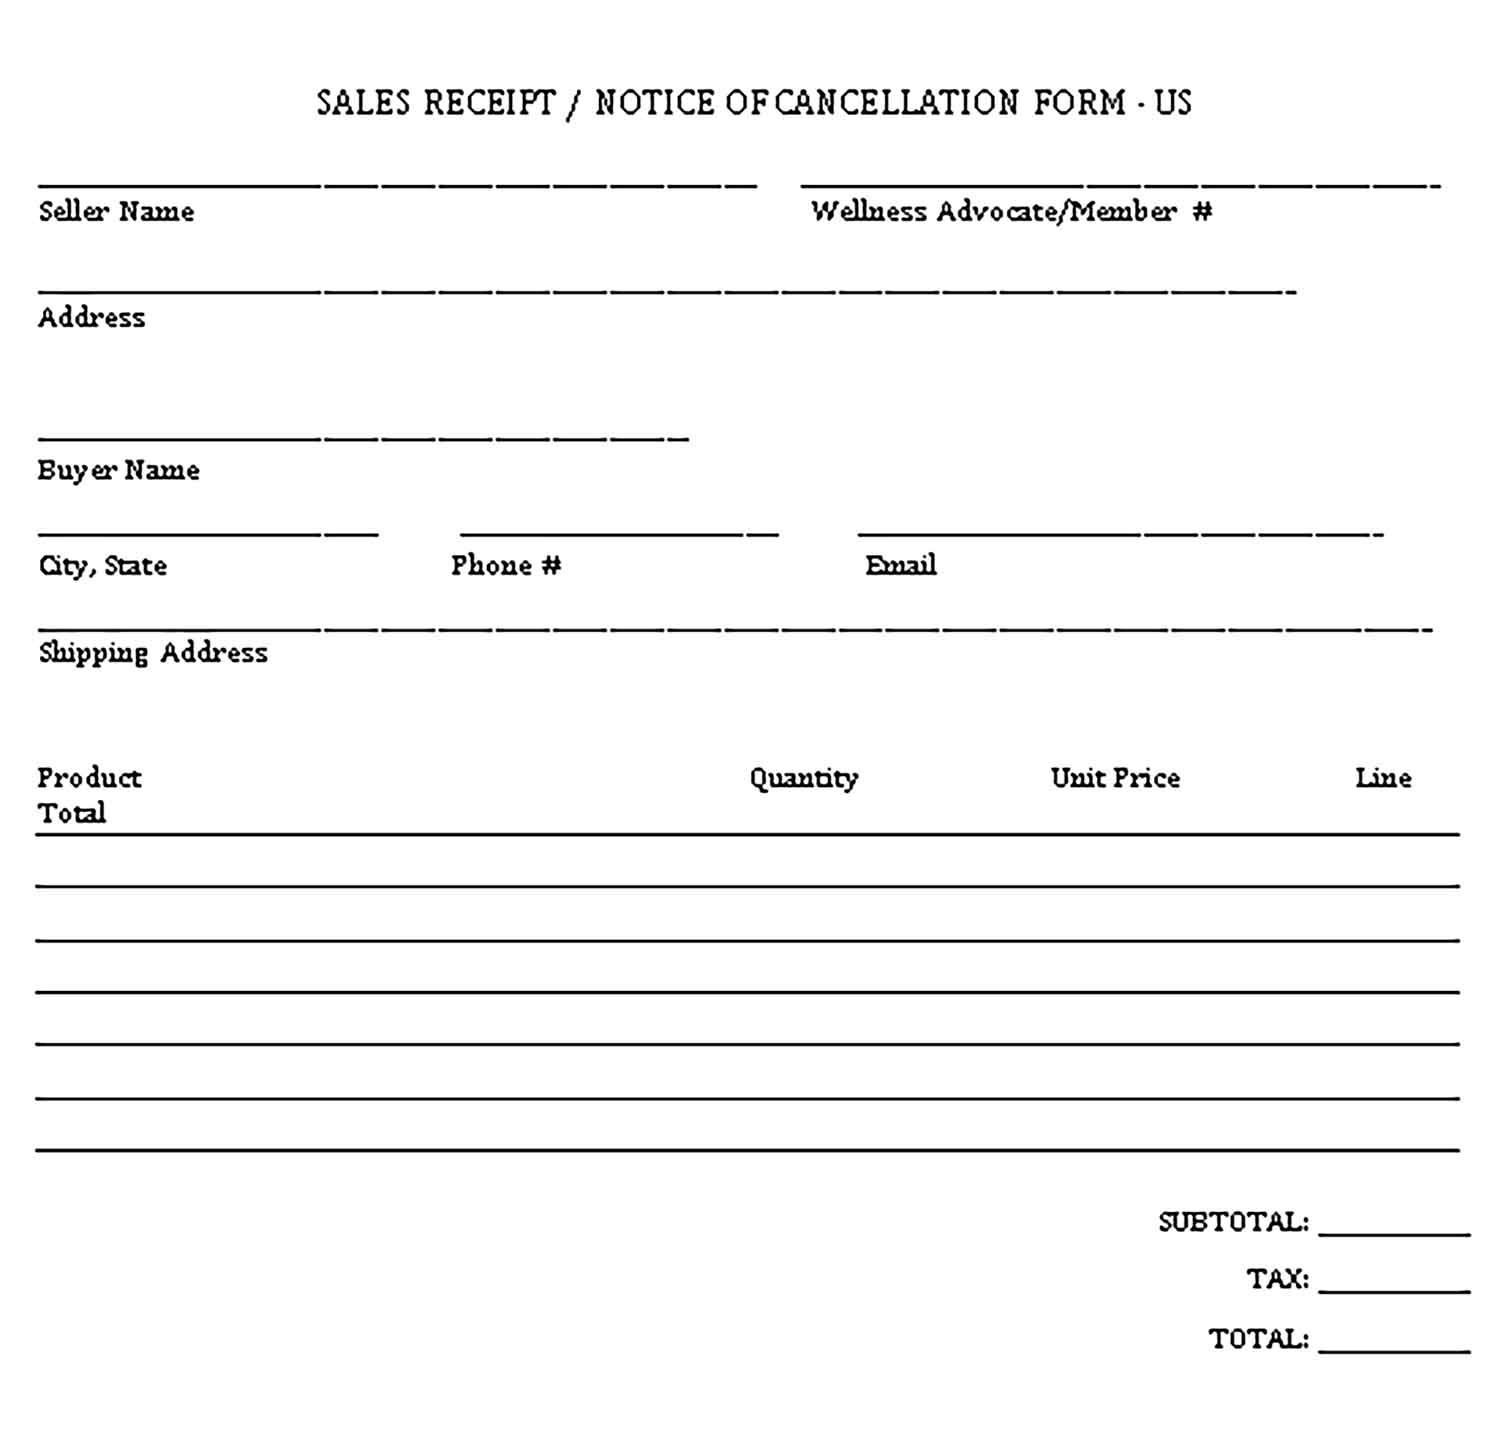 Sample Sale Receipt Notice of Cancellation Form Templates